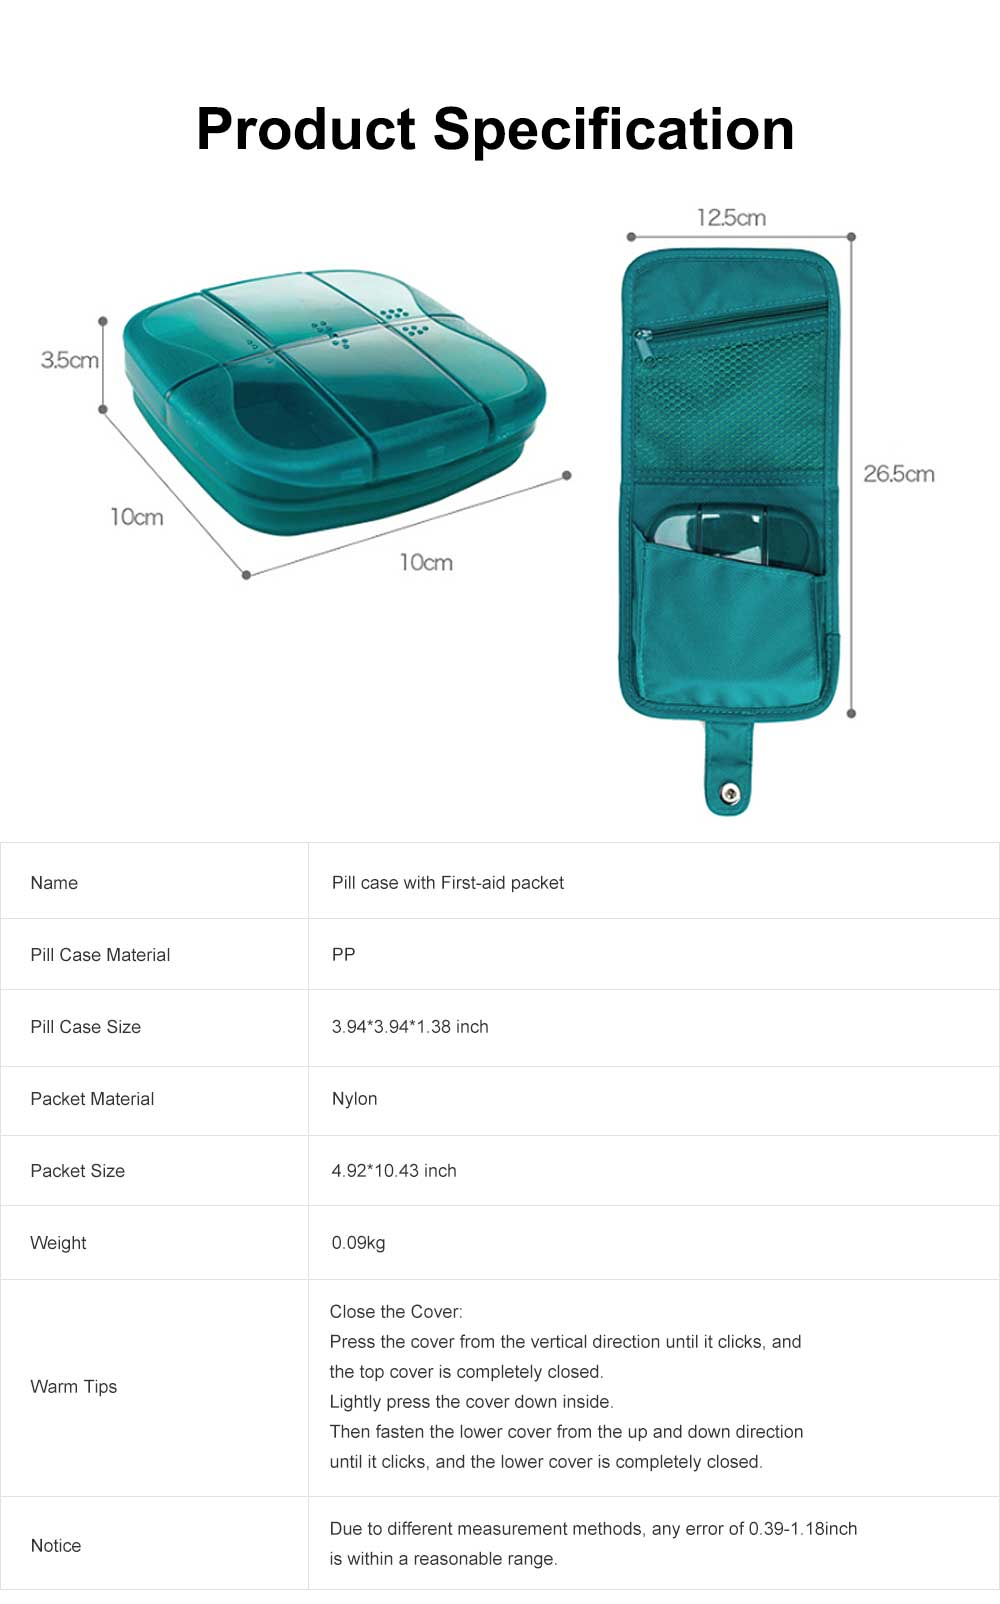 Minimalist Outdoor Moisture-proof Pill Case Box with Nylon First-aid Packet, 6 Separate Compartments Waterproof Medicine Storage Organizer Case 7